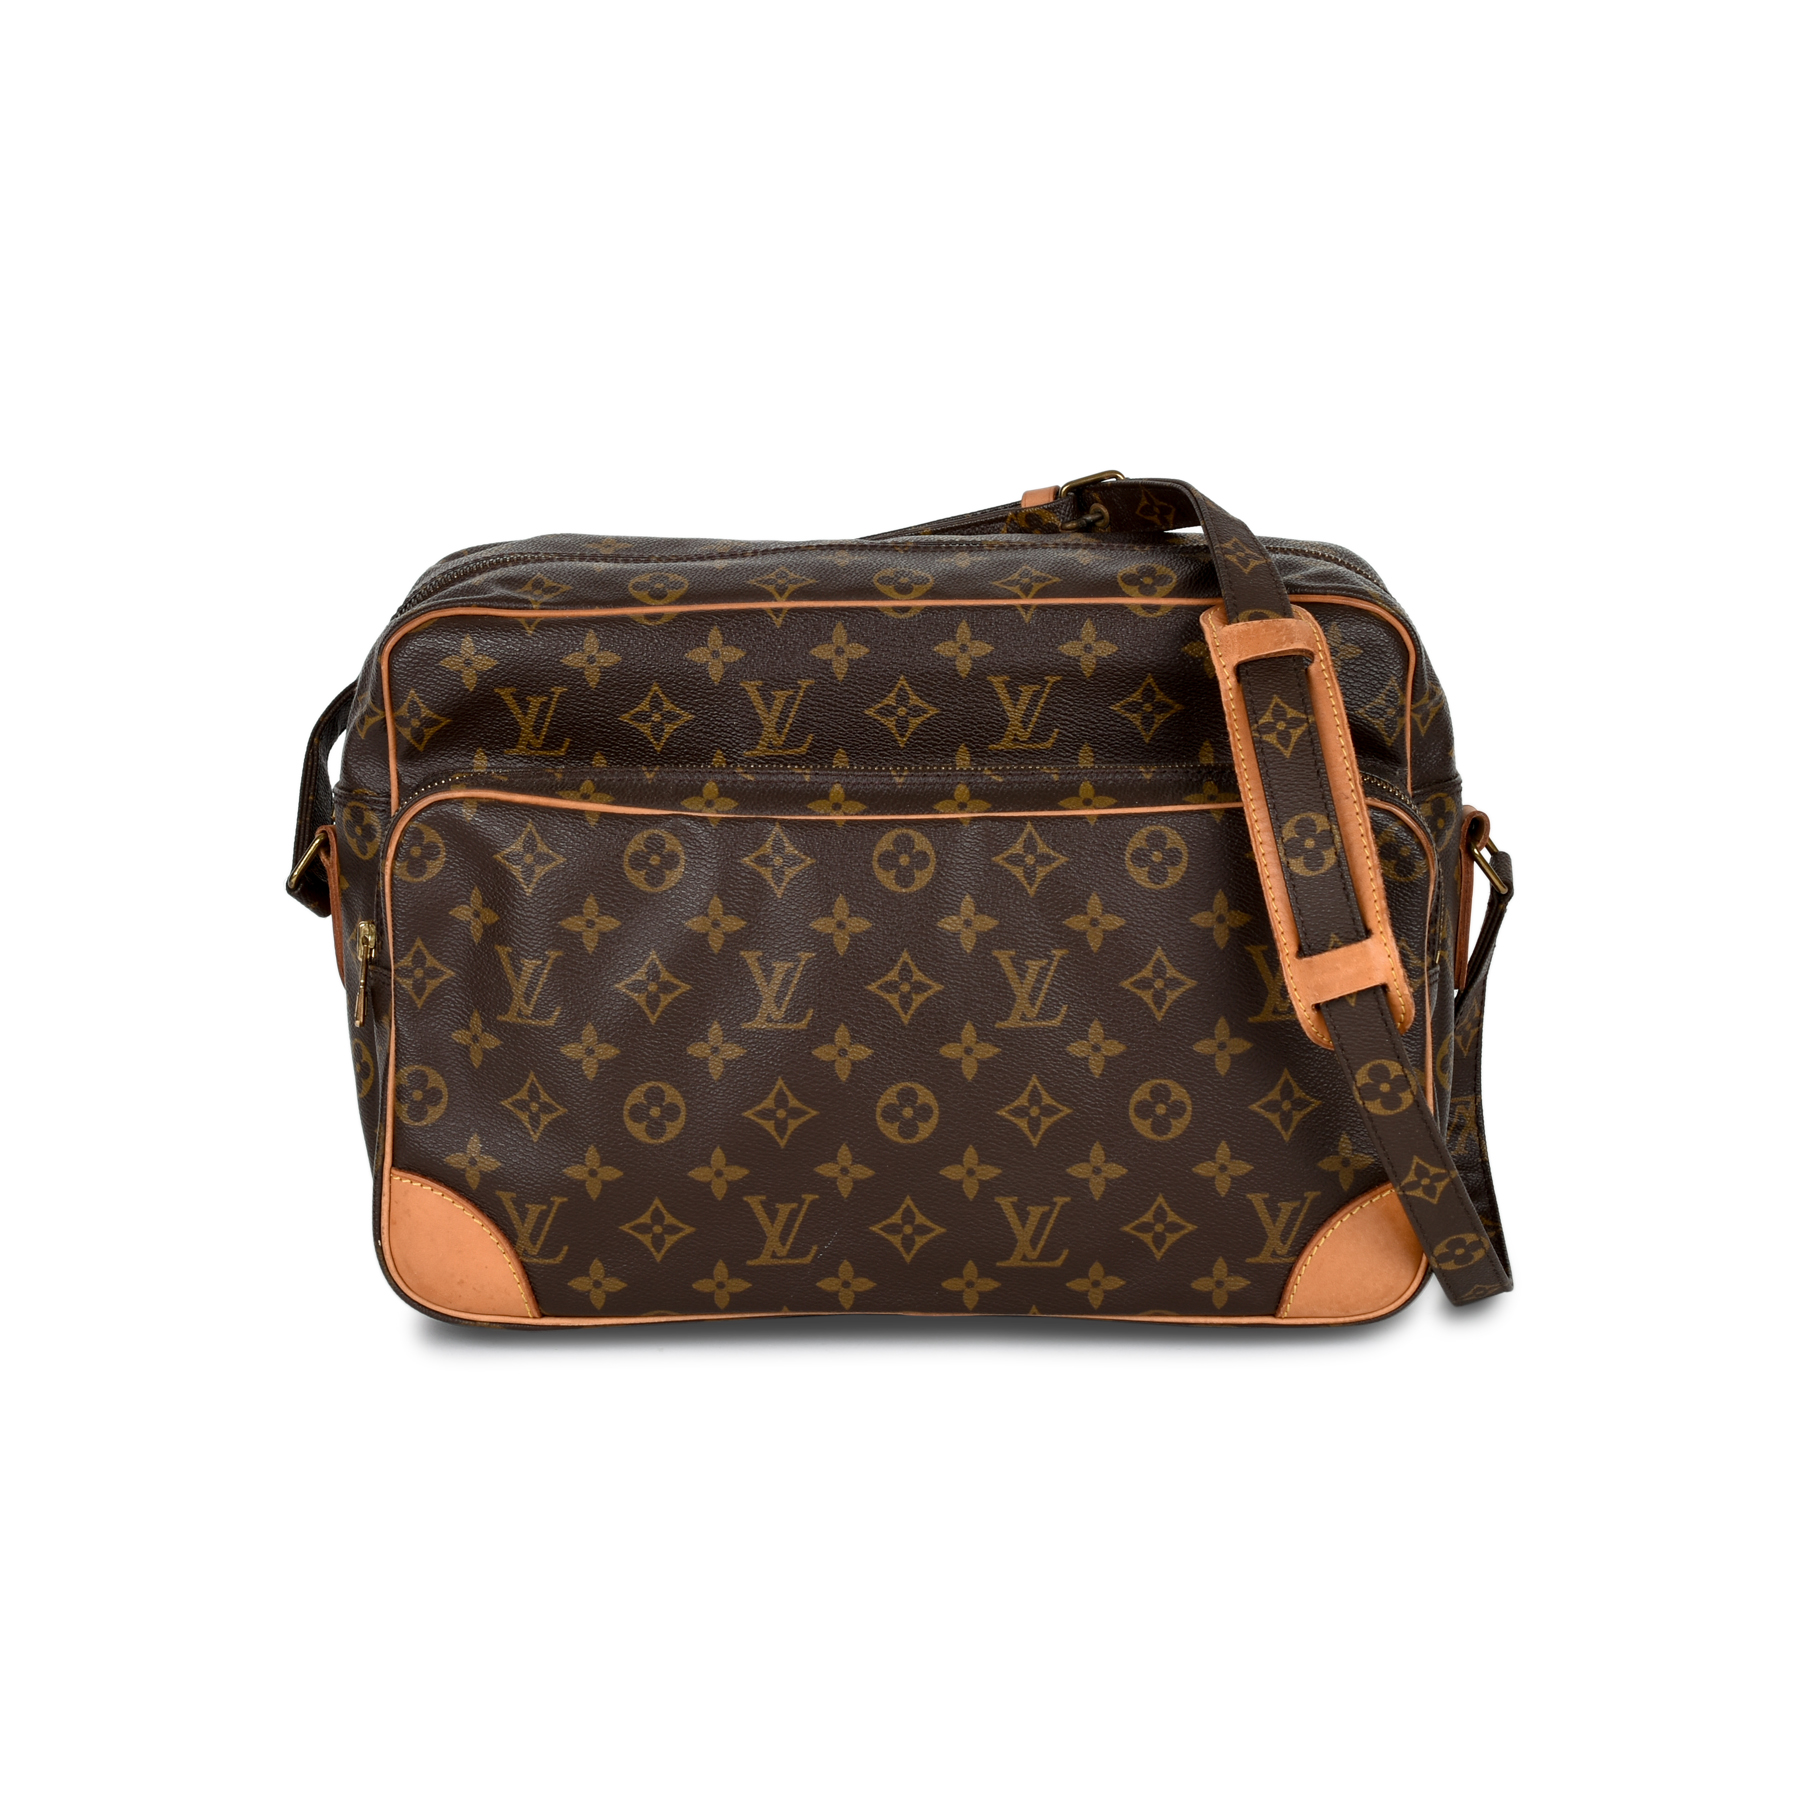 9eadc0afbf34 Authentic Second Hand Louis Vuitton Monogram Camera Bag (PSS-430-00001)